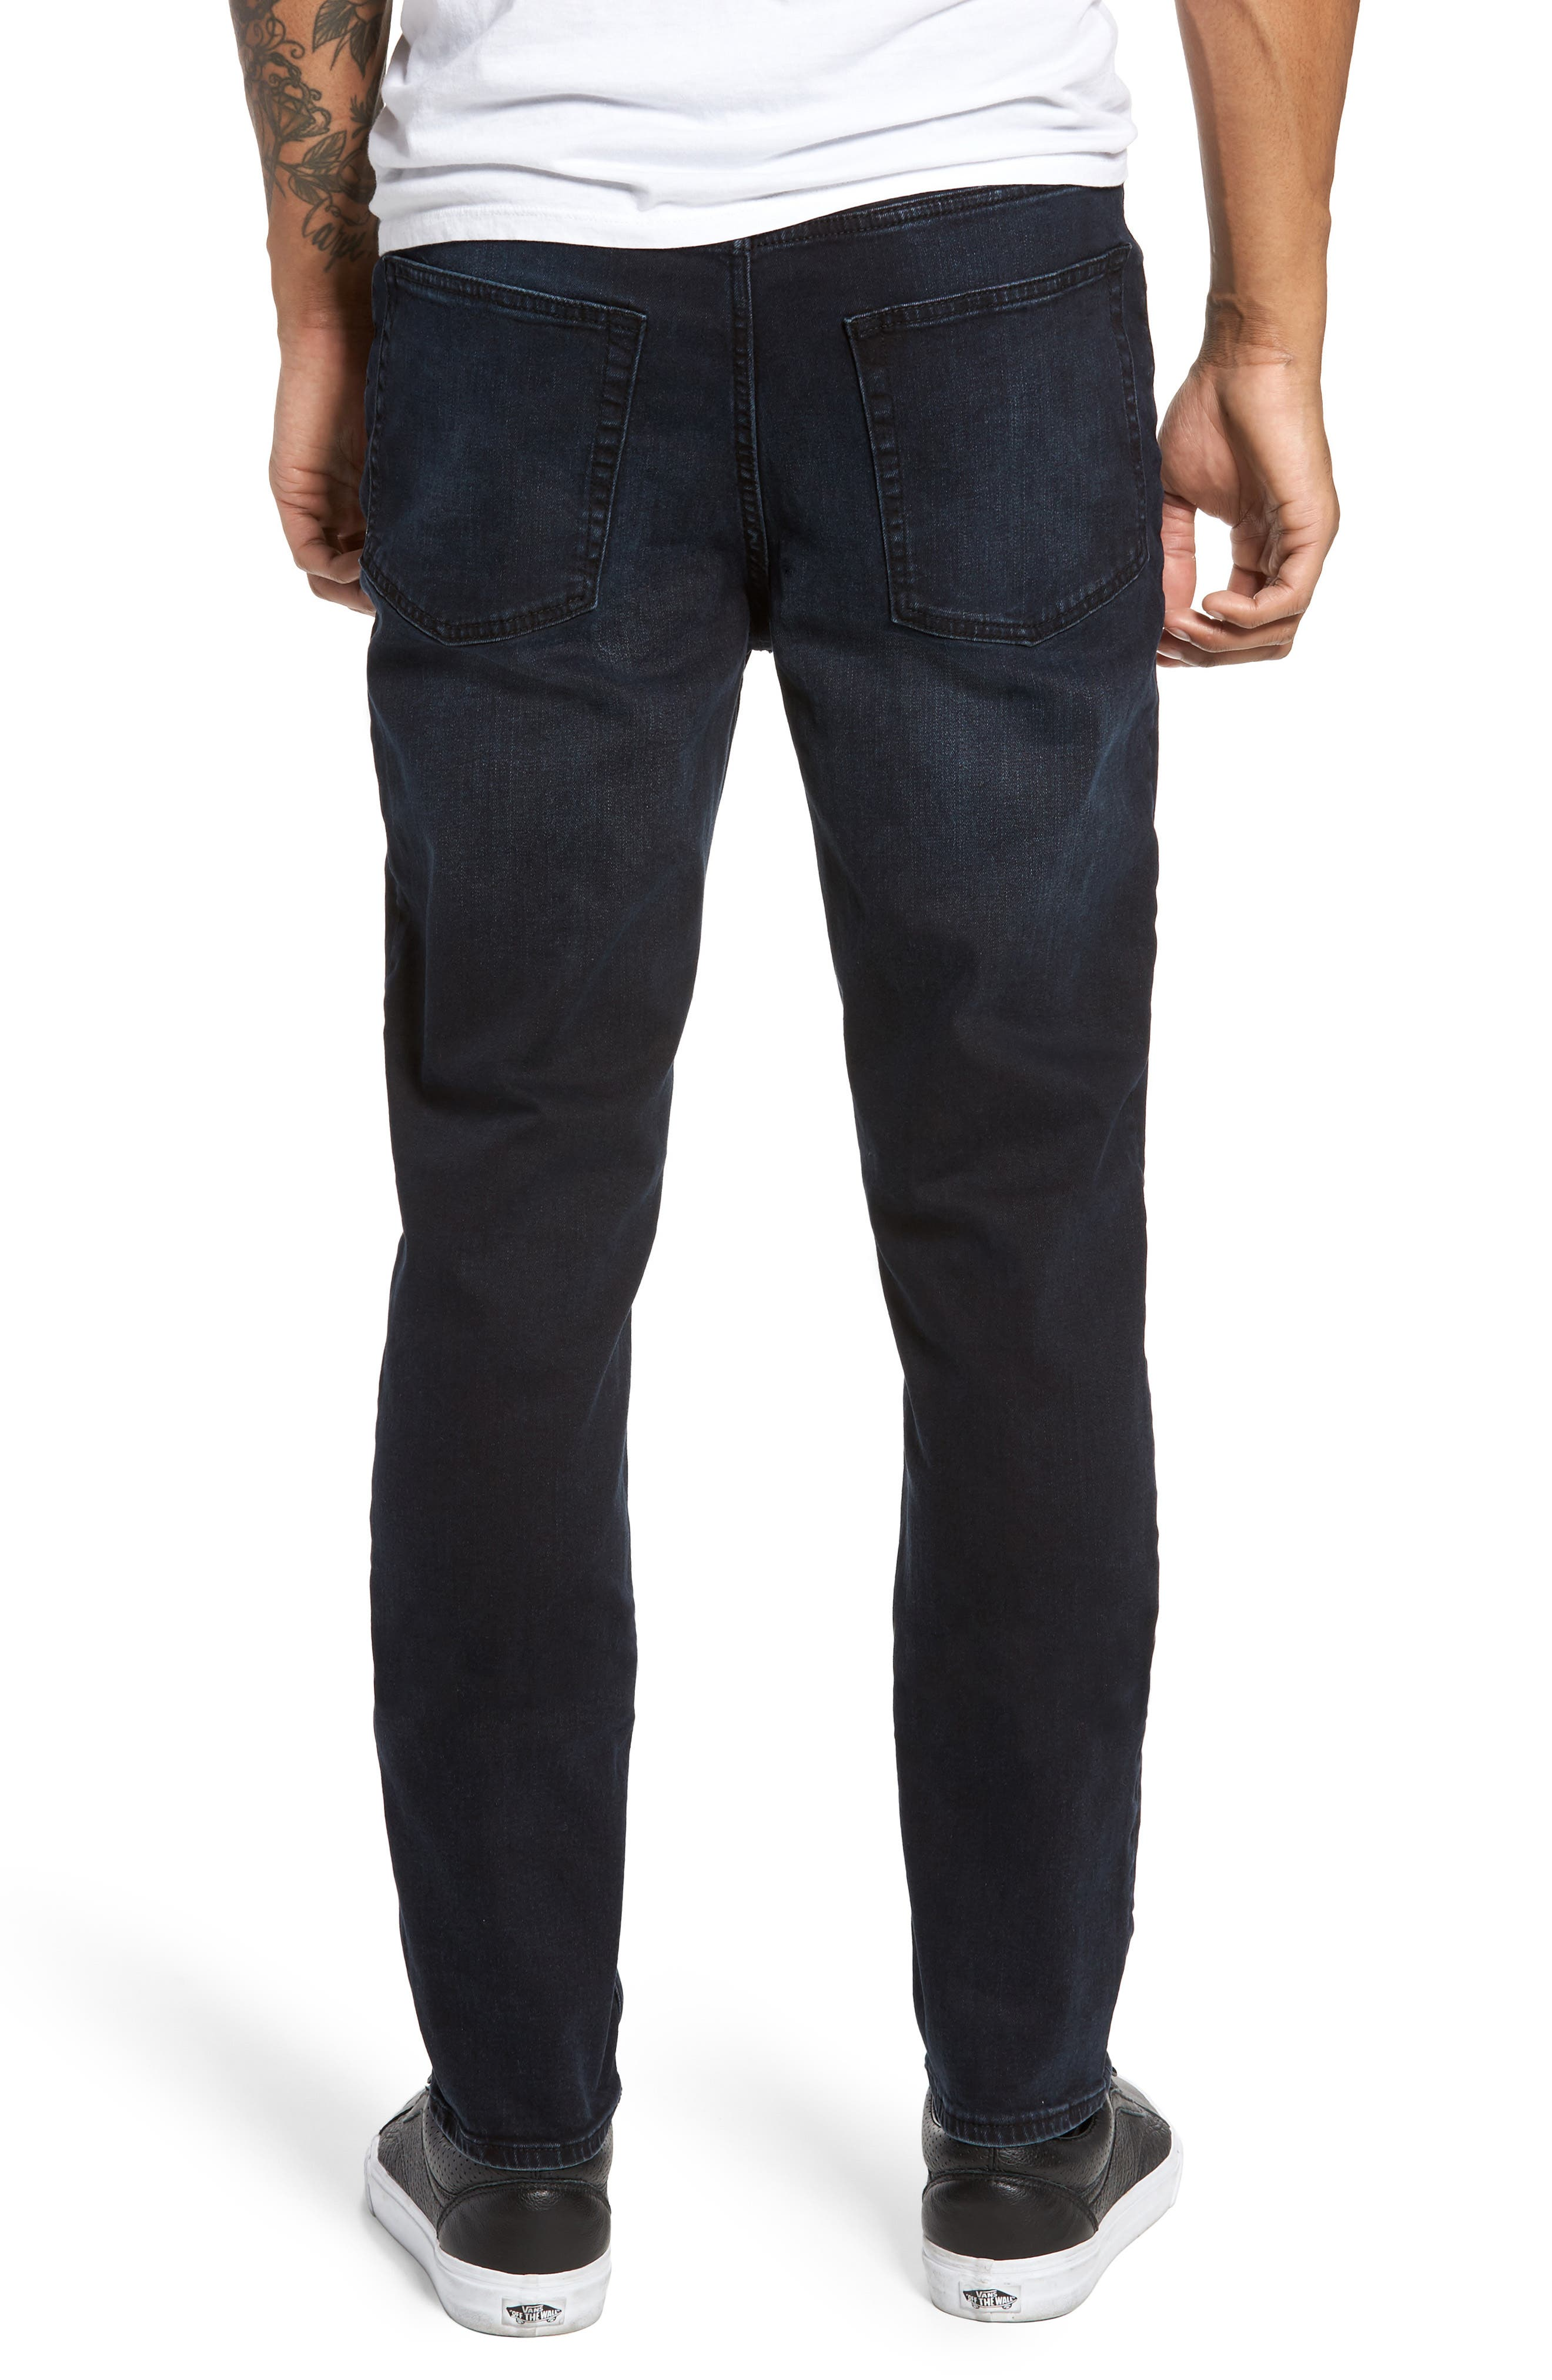 Sonic Skinny Fit Jeans,                             Alternate thumbnail 2, color,                             402